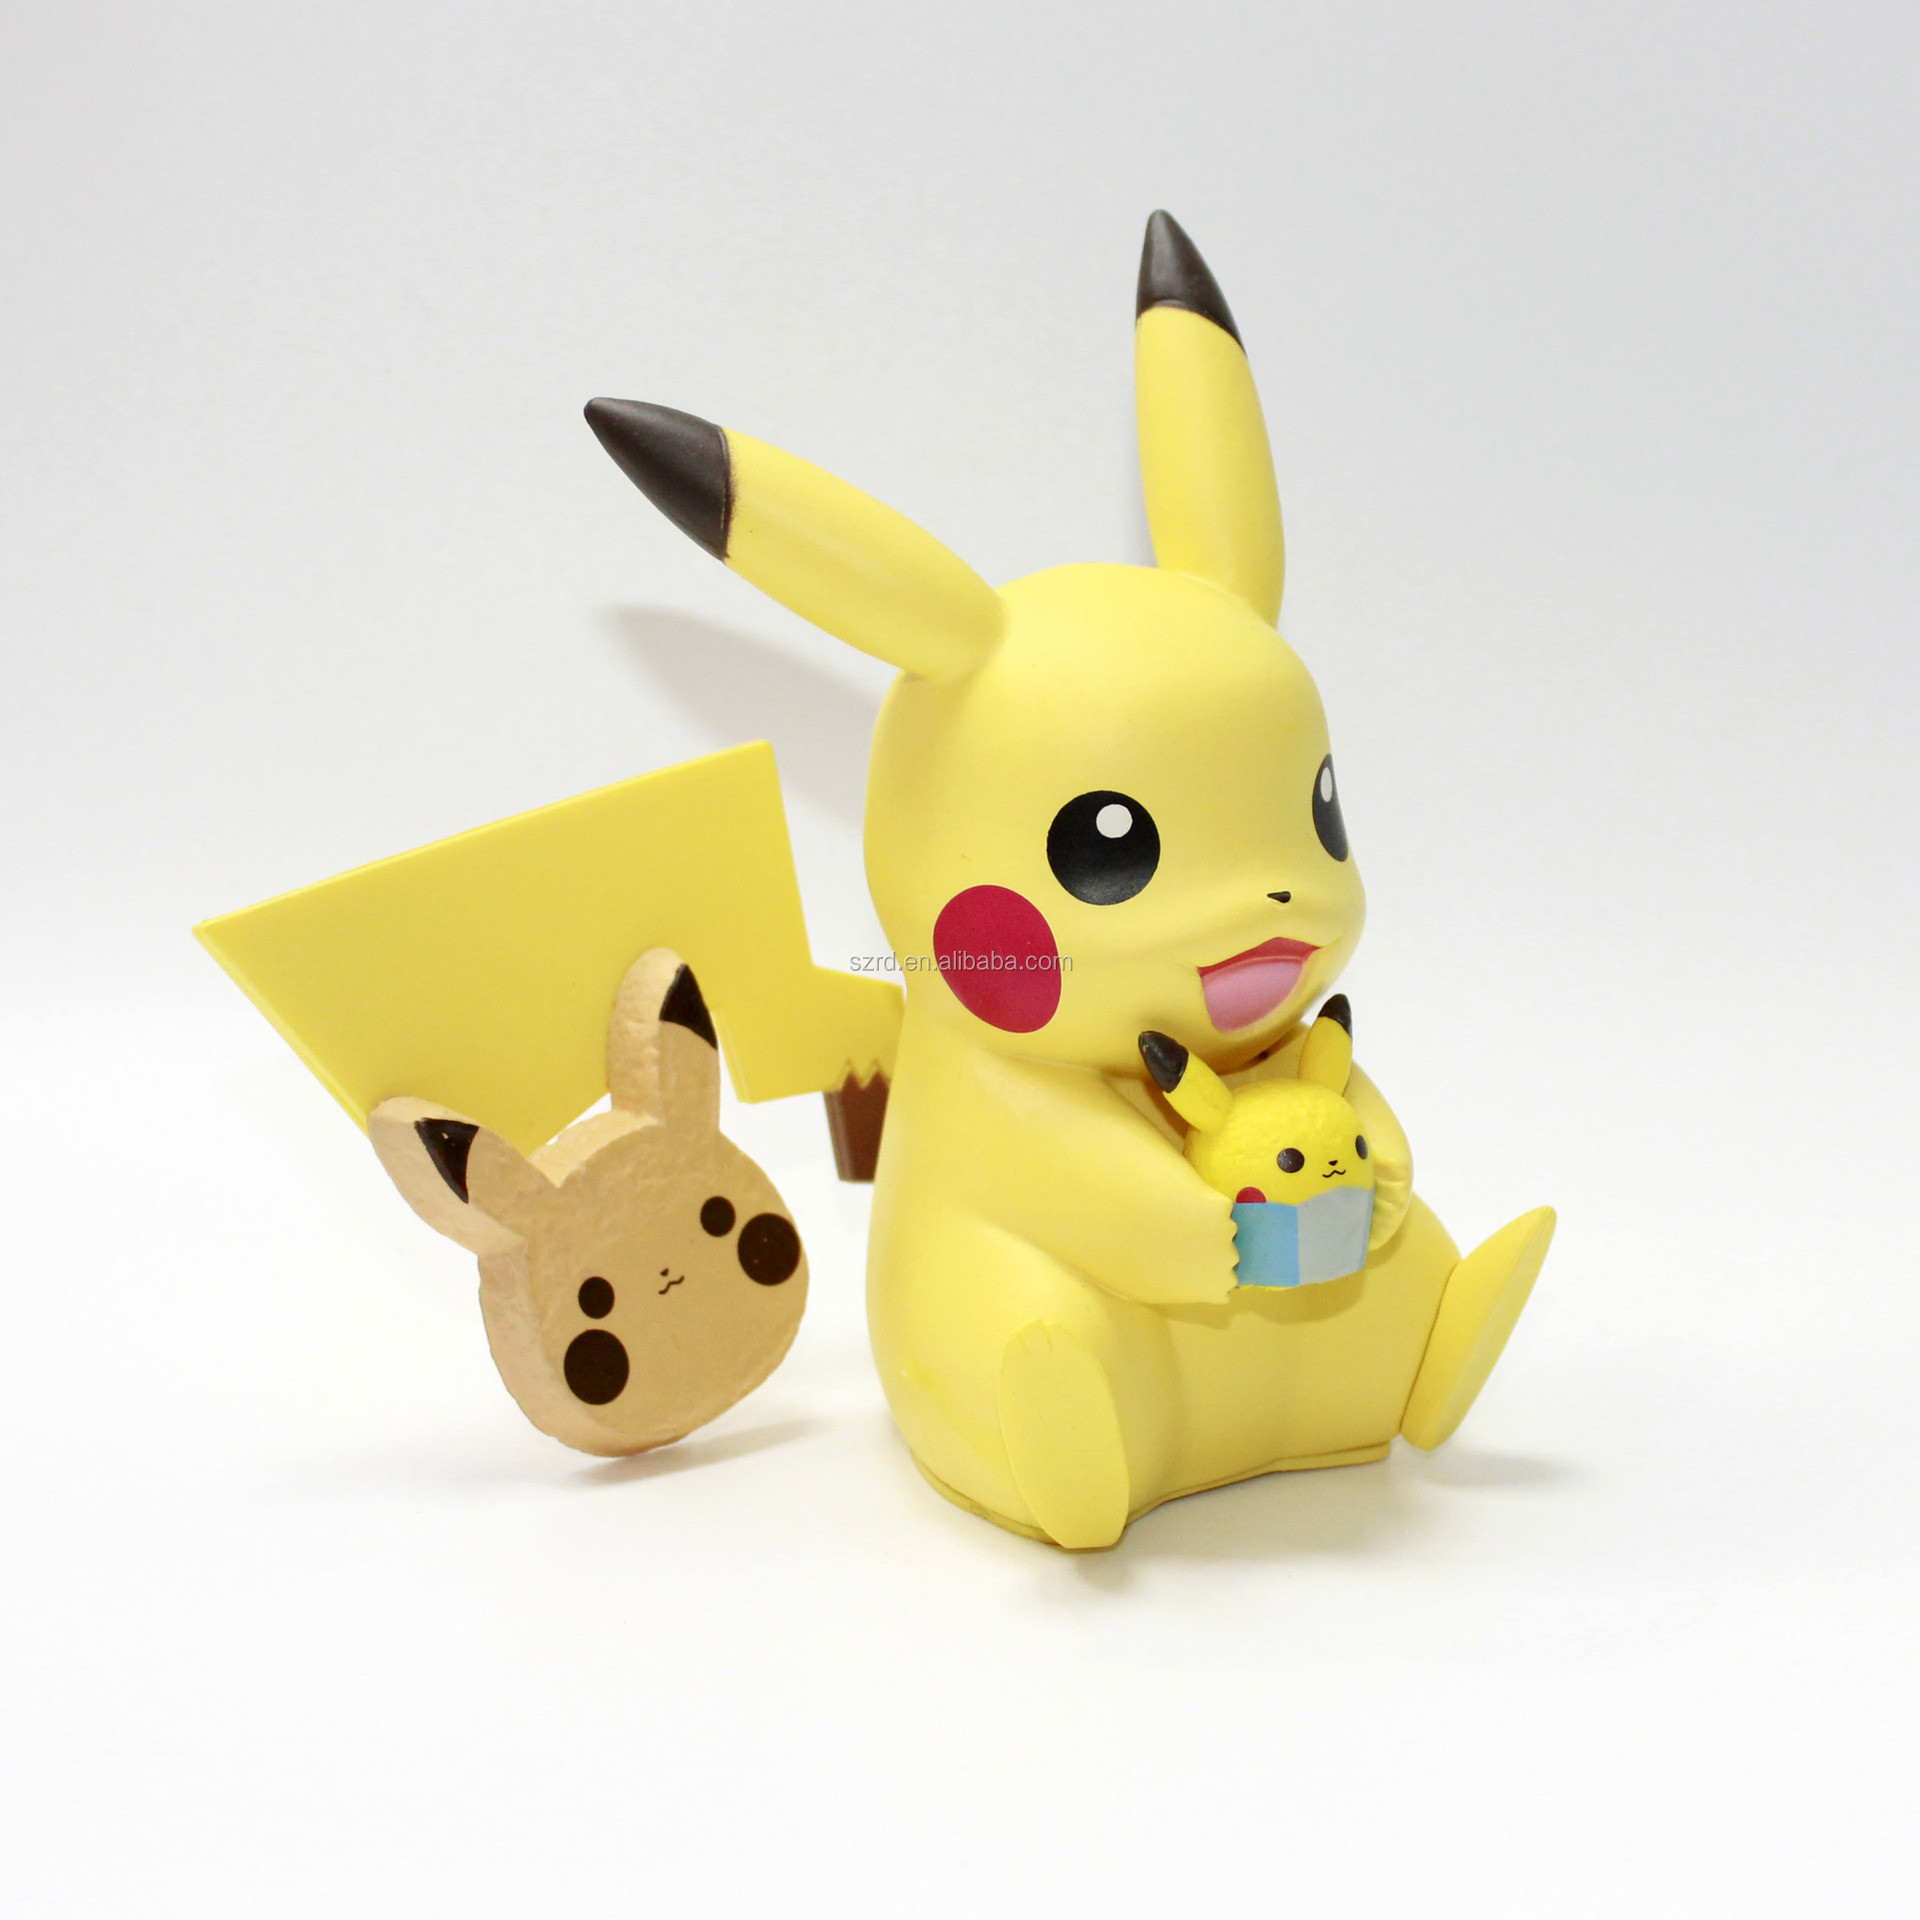 Pokemon statue collective poly-resin art figurine sculpture molds making